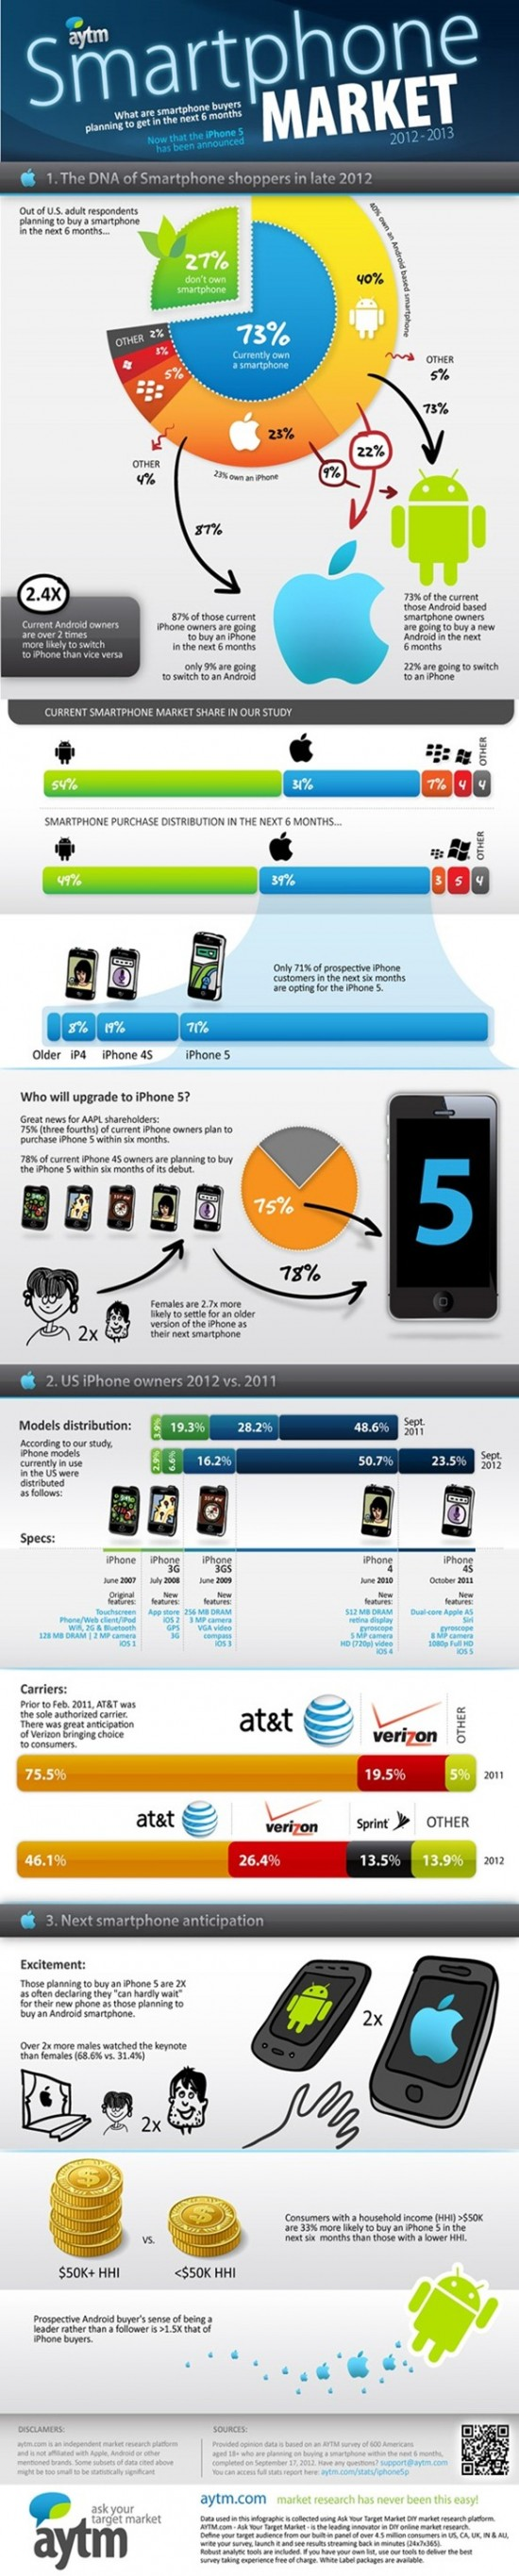 iPhone 5 2012 infographic